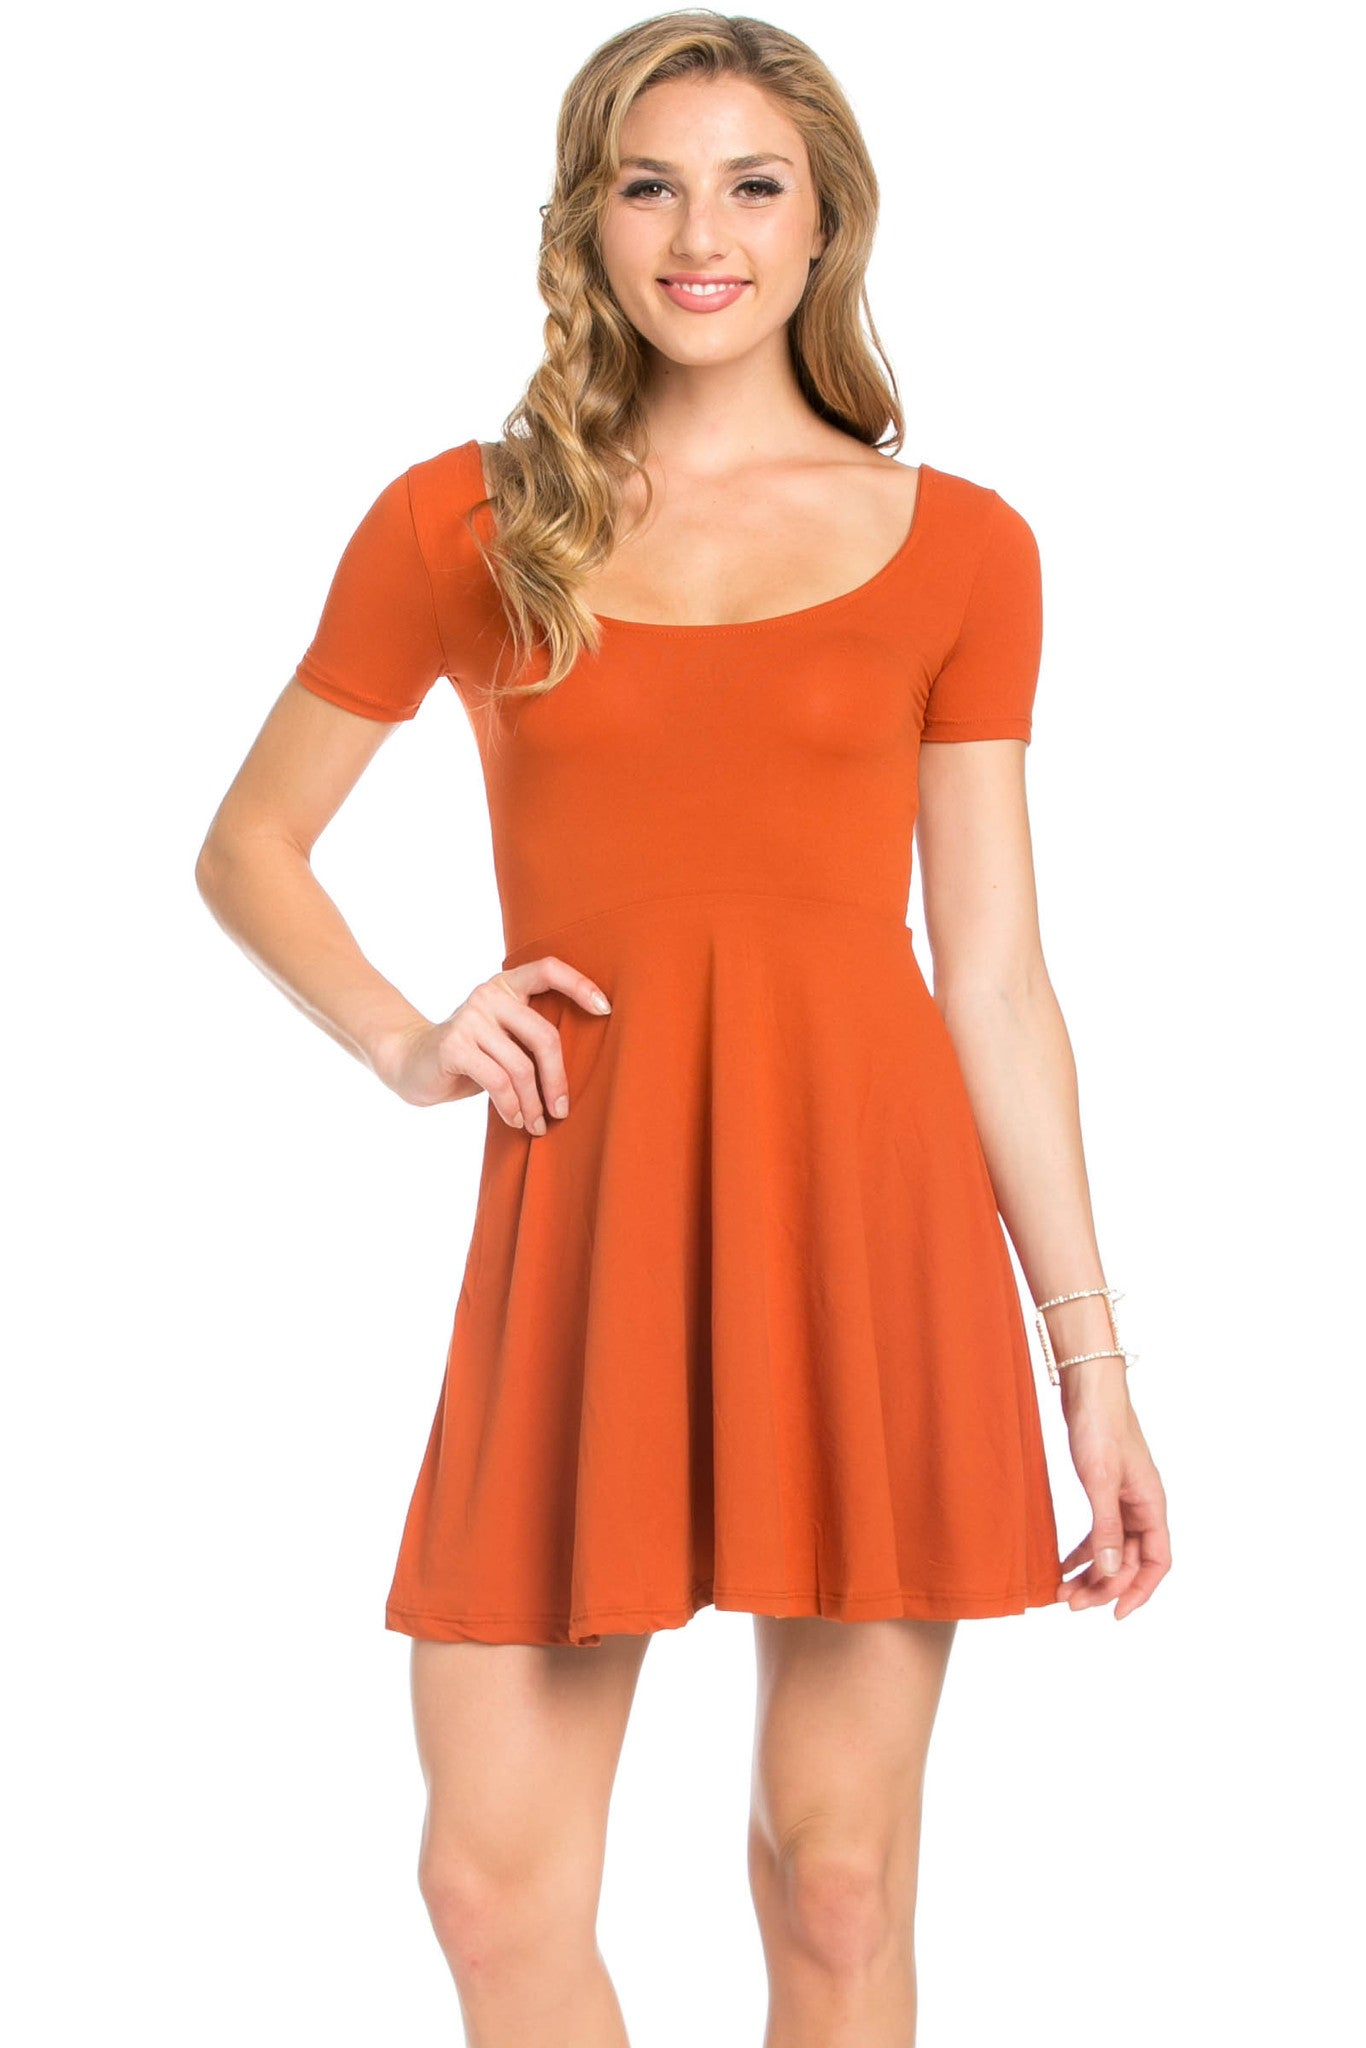 Micro Suede Rust Mini Dress - Dresses - My Yuccie - 2